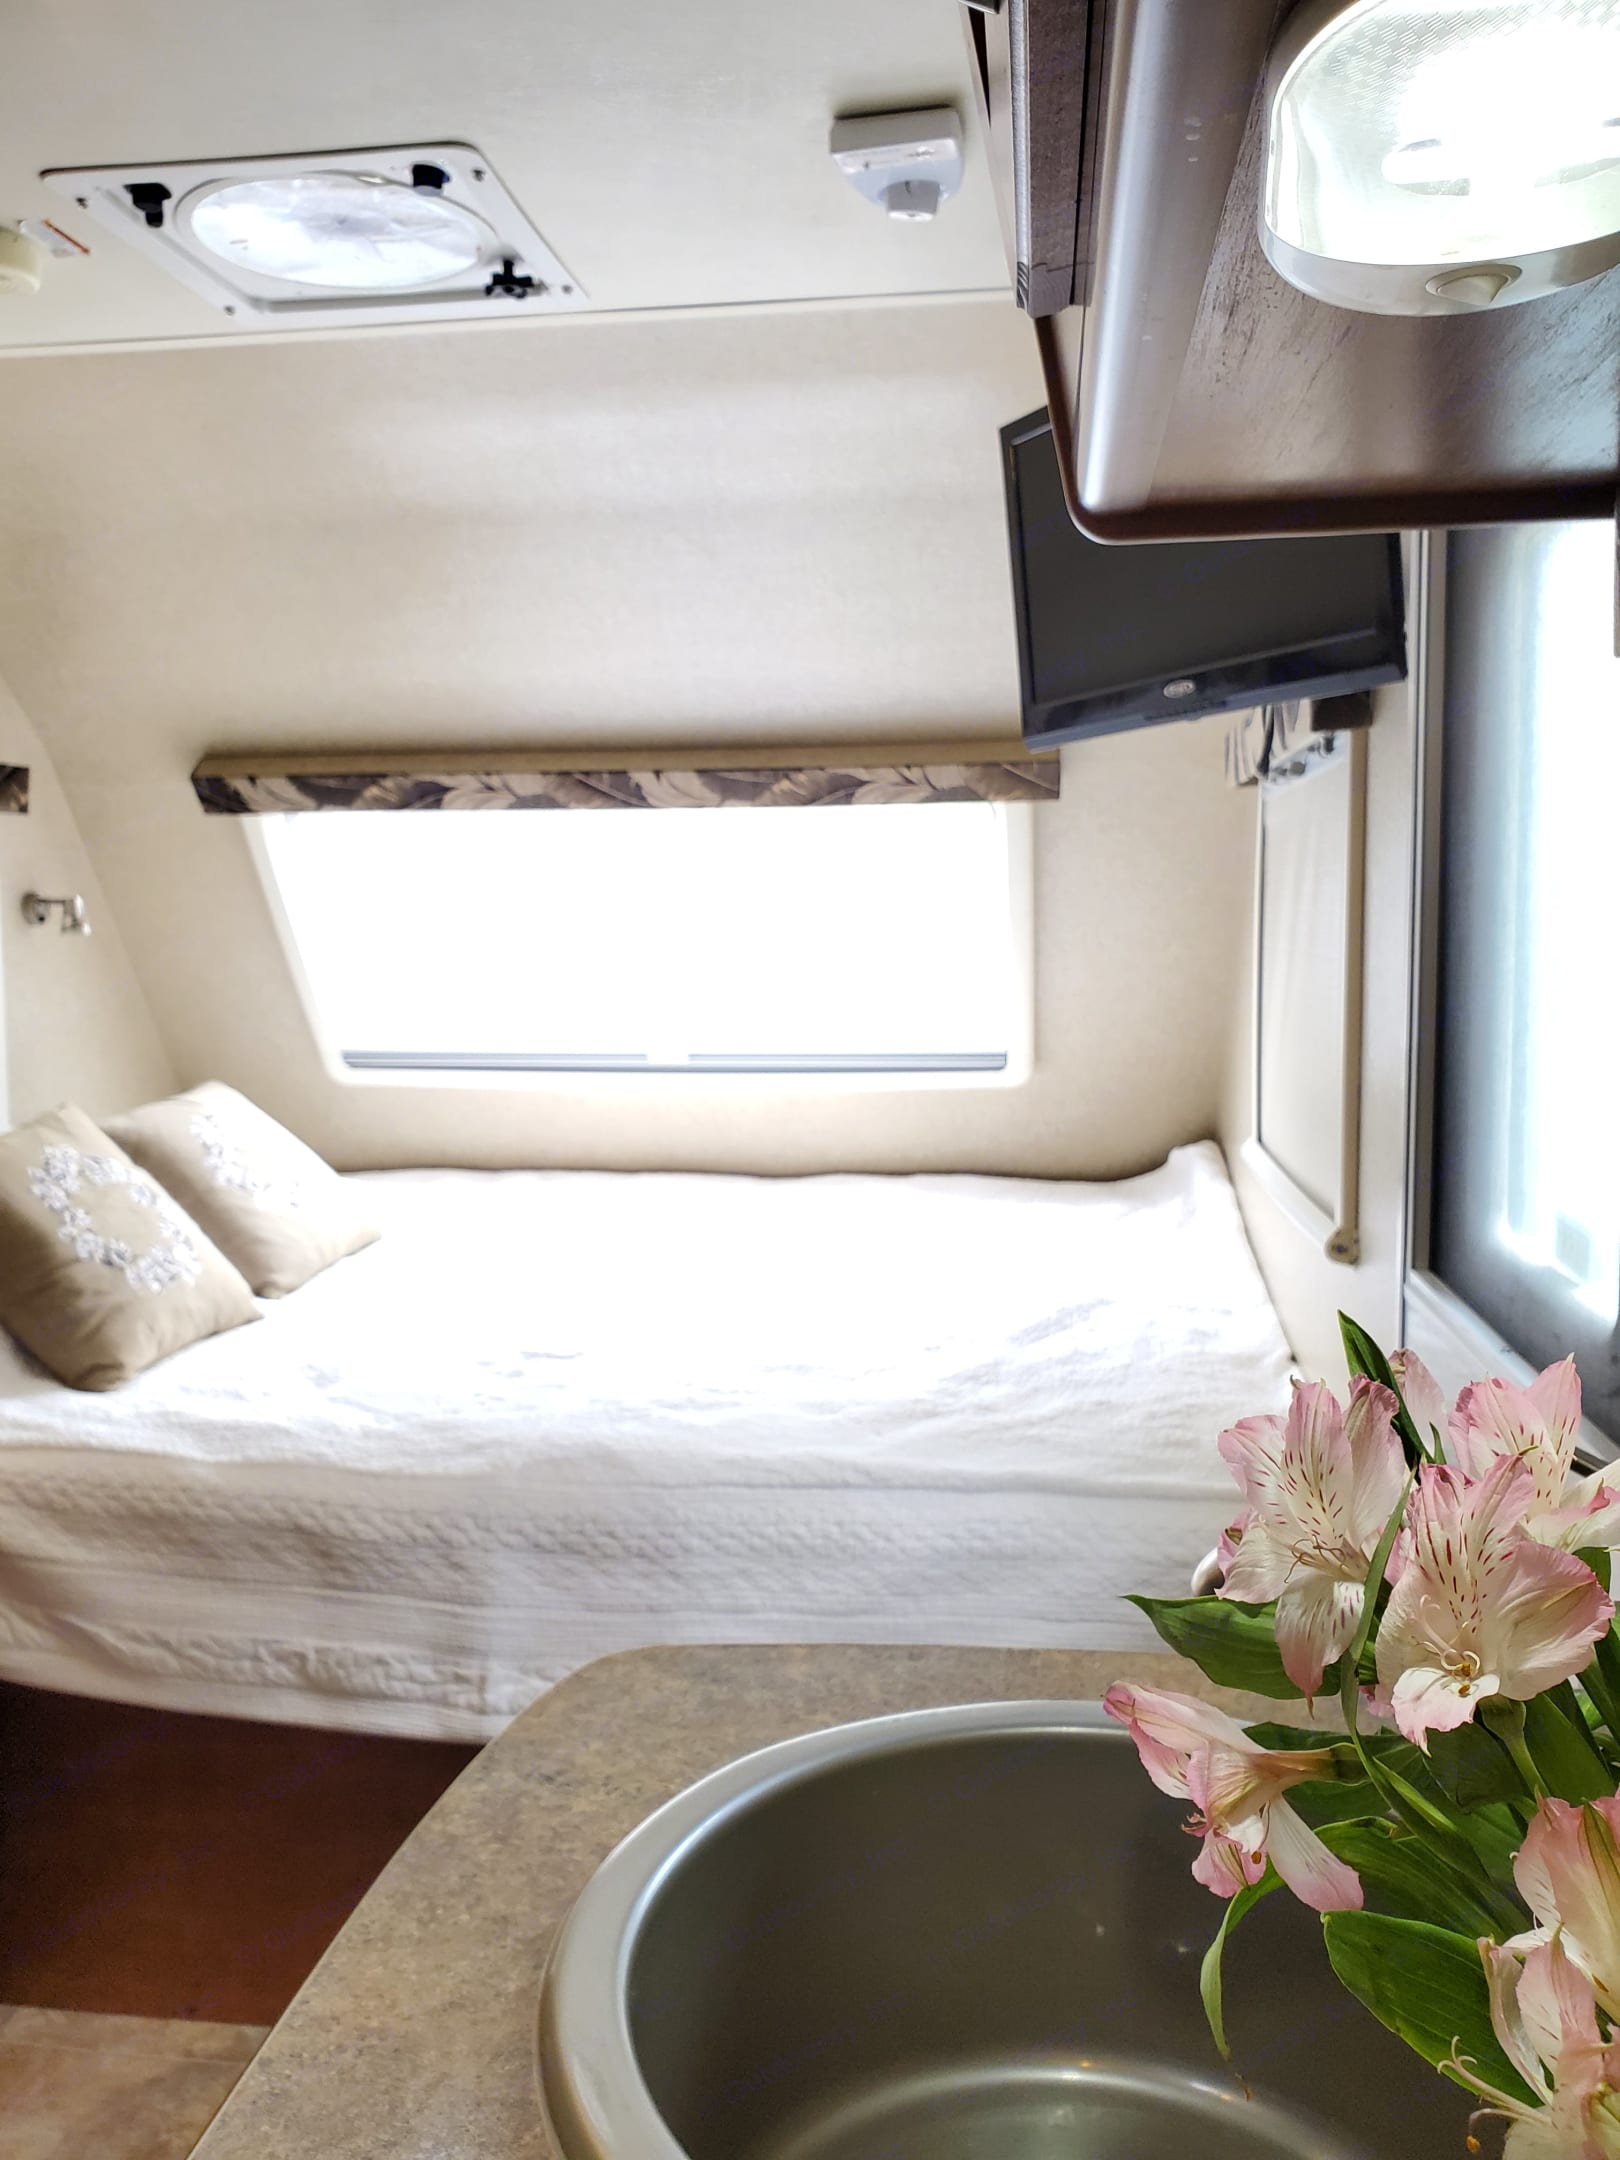 This will have you sleeping in comfort after your days' excursions.. Lance 1575 2016